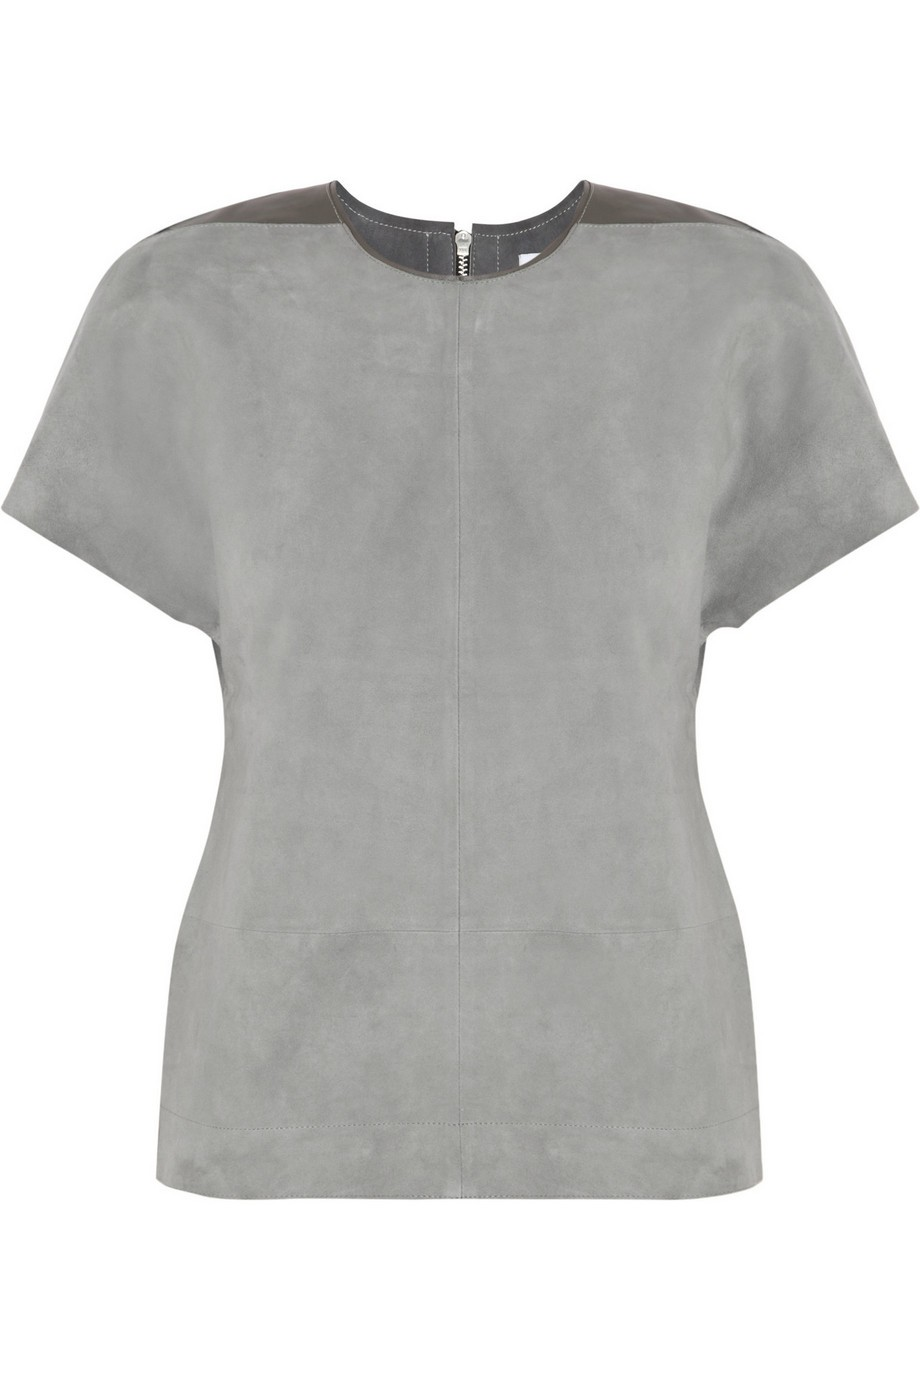 Freya suede and leather top